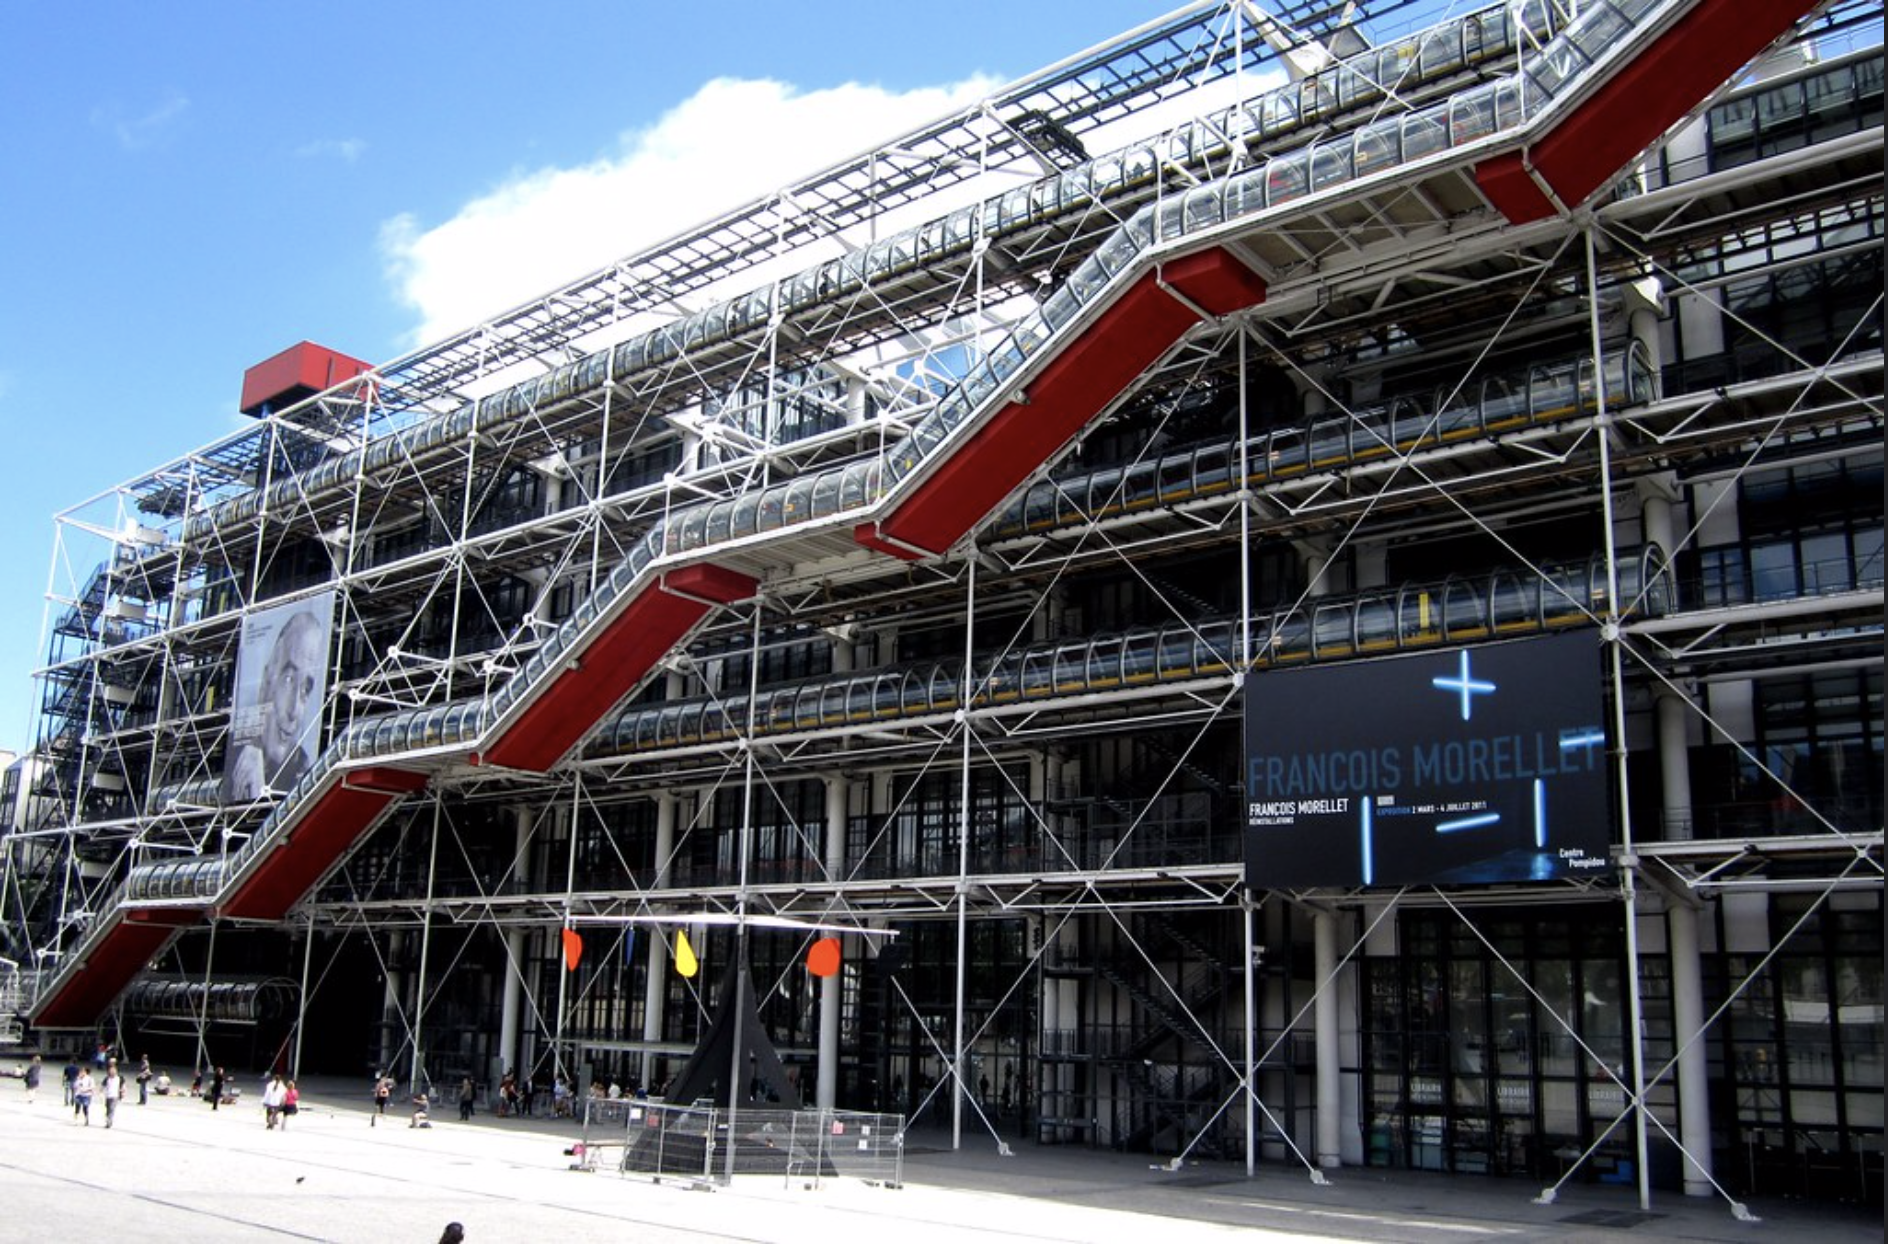 Centre George Pompidou Paris France musée